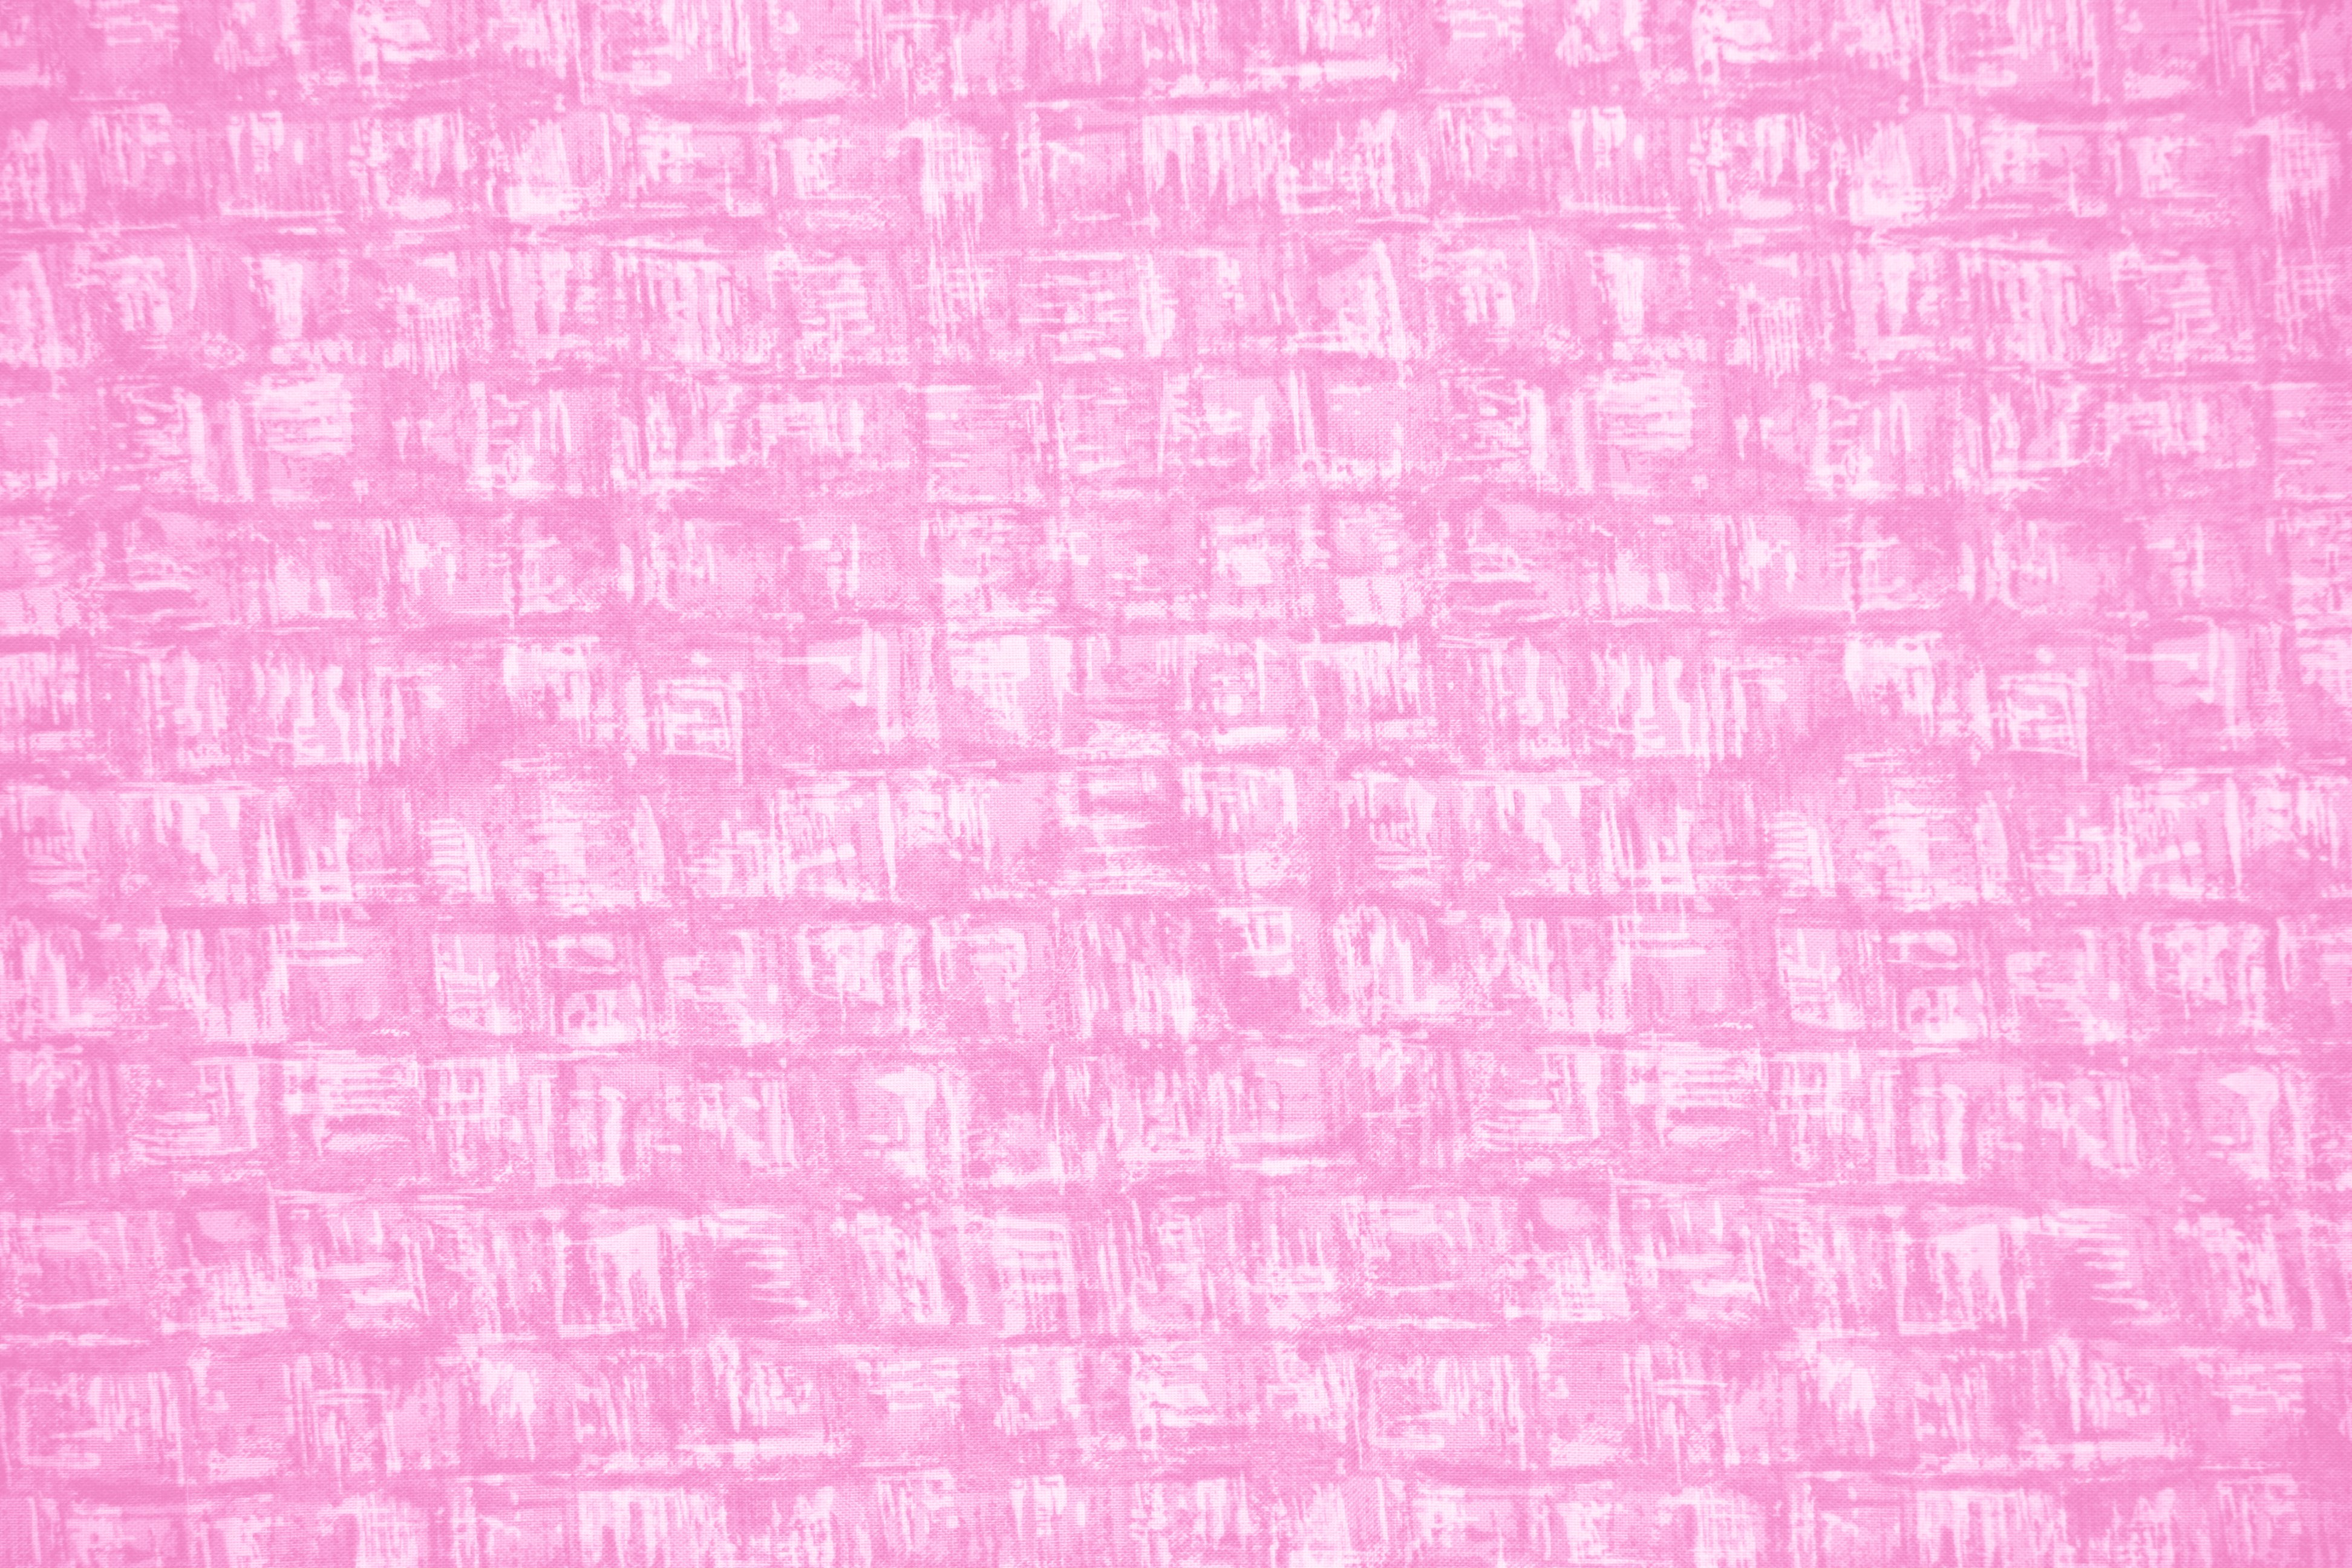 Pink fabric texture free high resolution photo dimensions 3888 - Pink Abstract Squares Fabric Texture